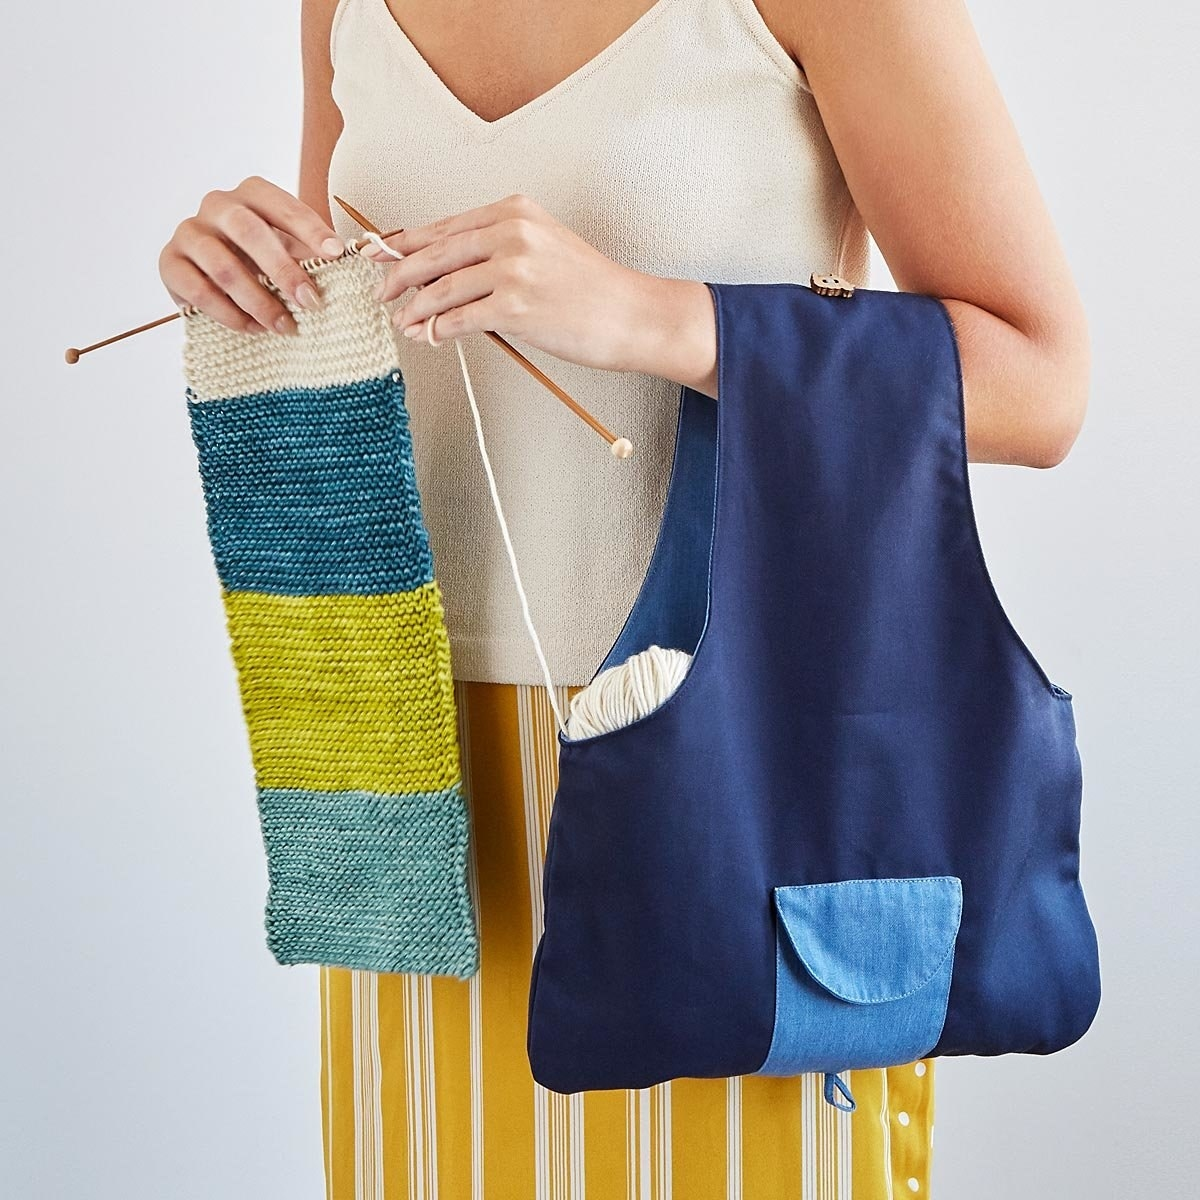 Model holding travel knitting bag